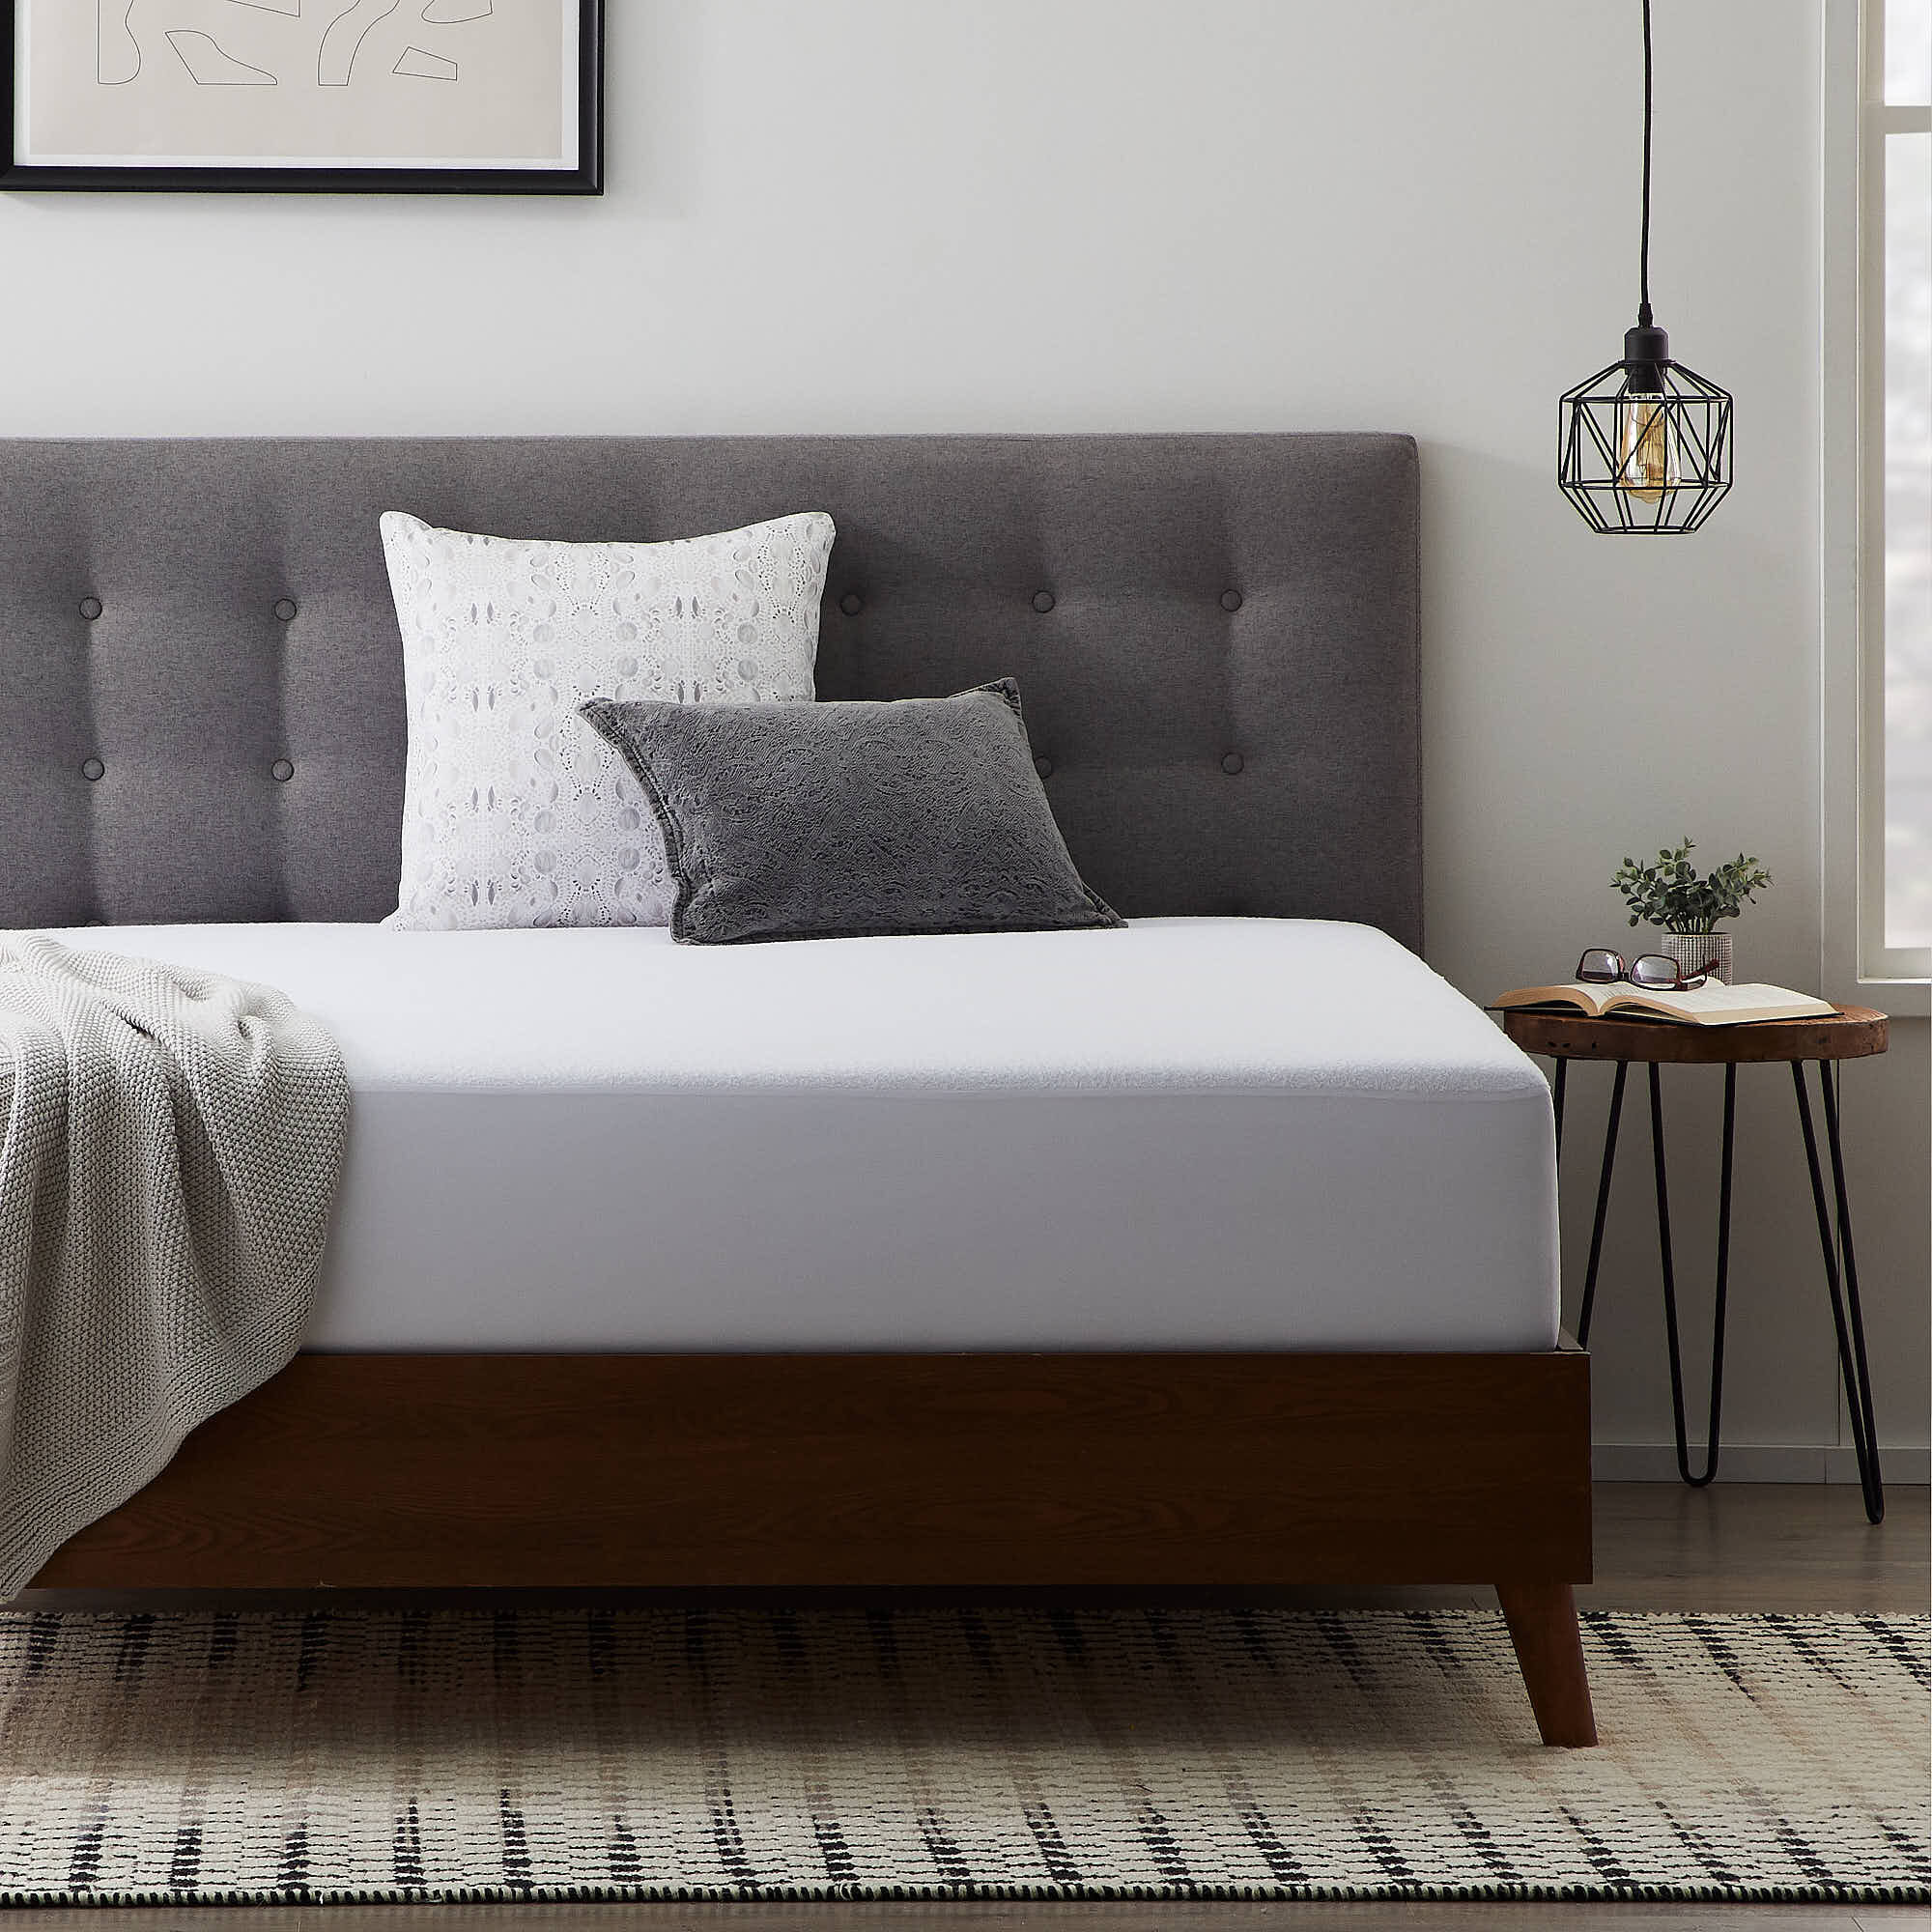 Twin Mattress Covers Protectors You Ll Love In 2021 Wayfair